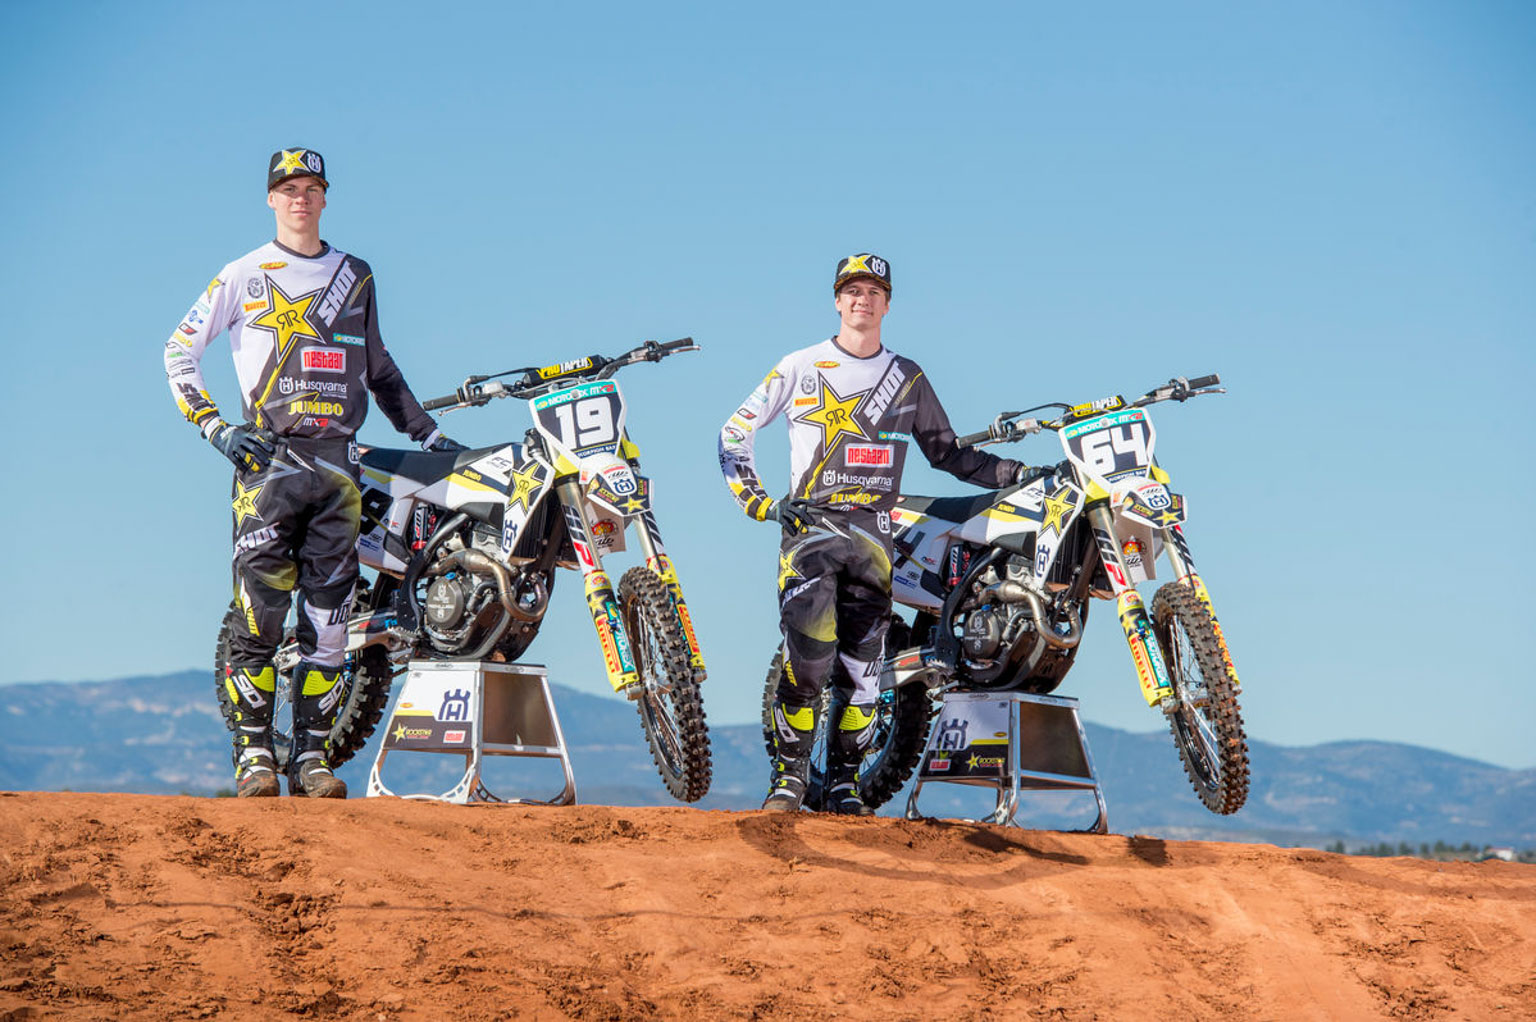 42453_Rockstar Energy Husqvarna MX2 Factory Racing_shotbybavo_7